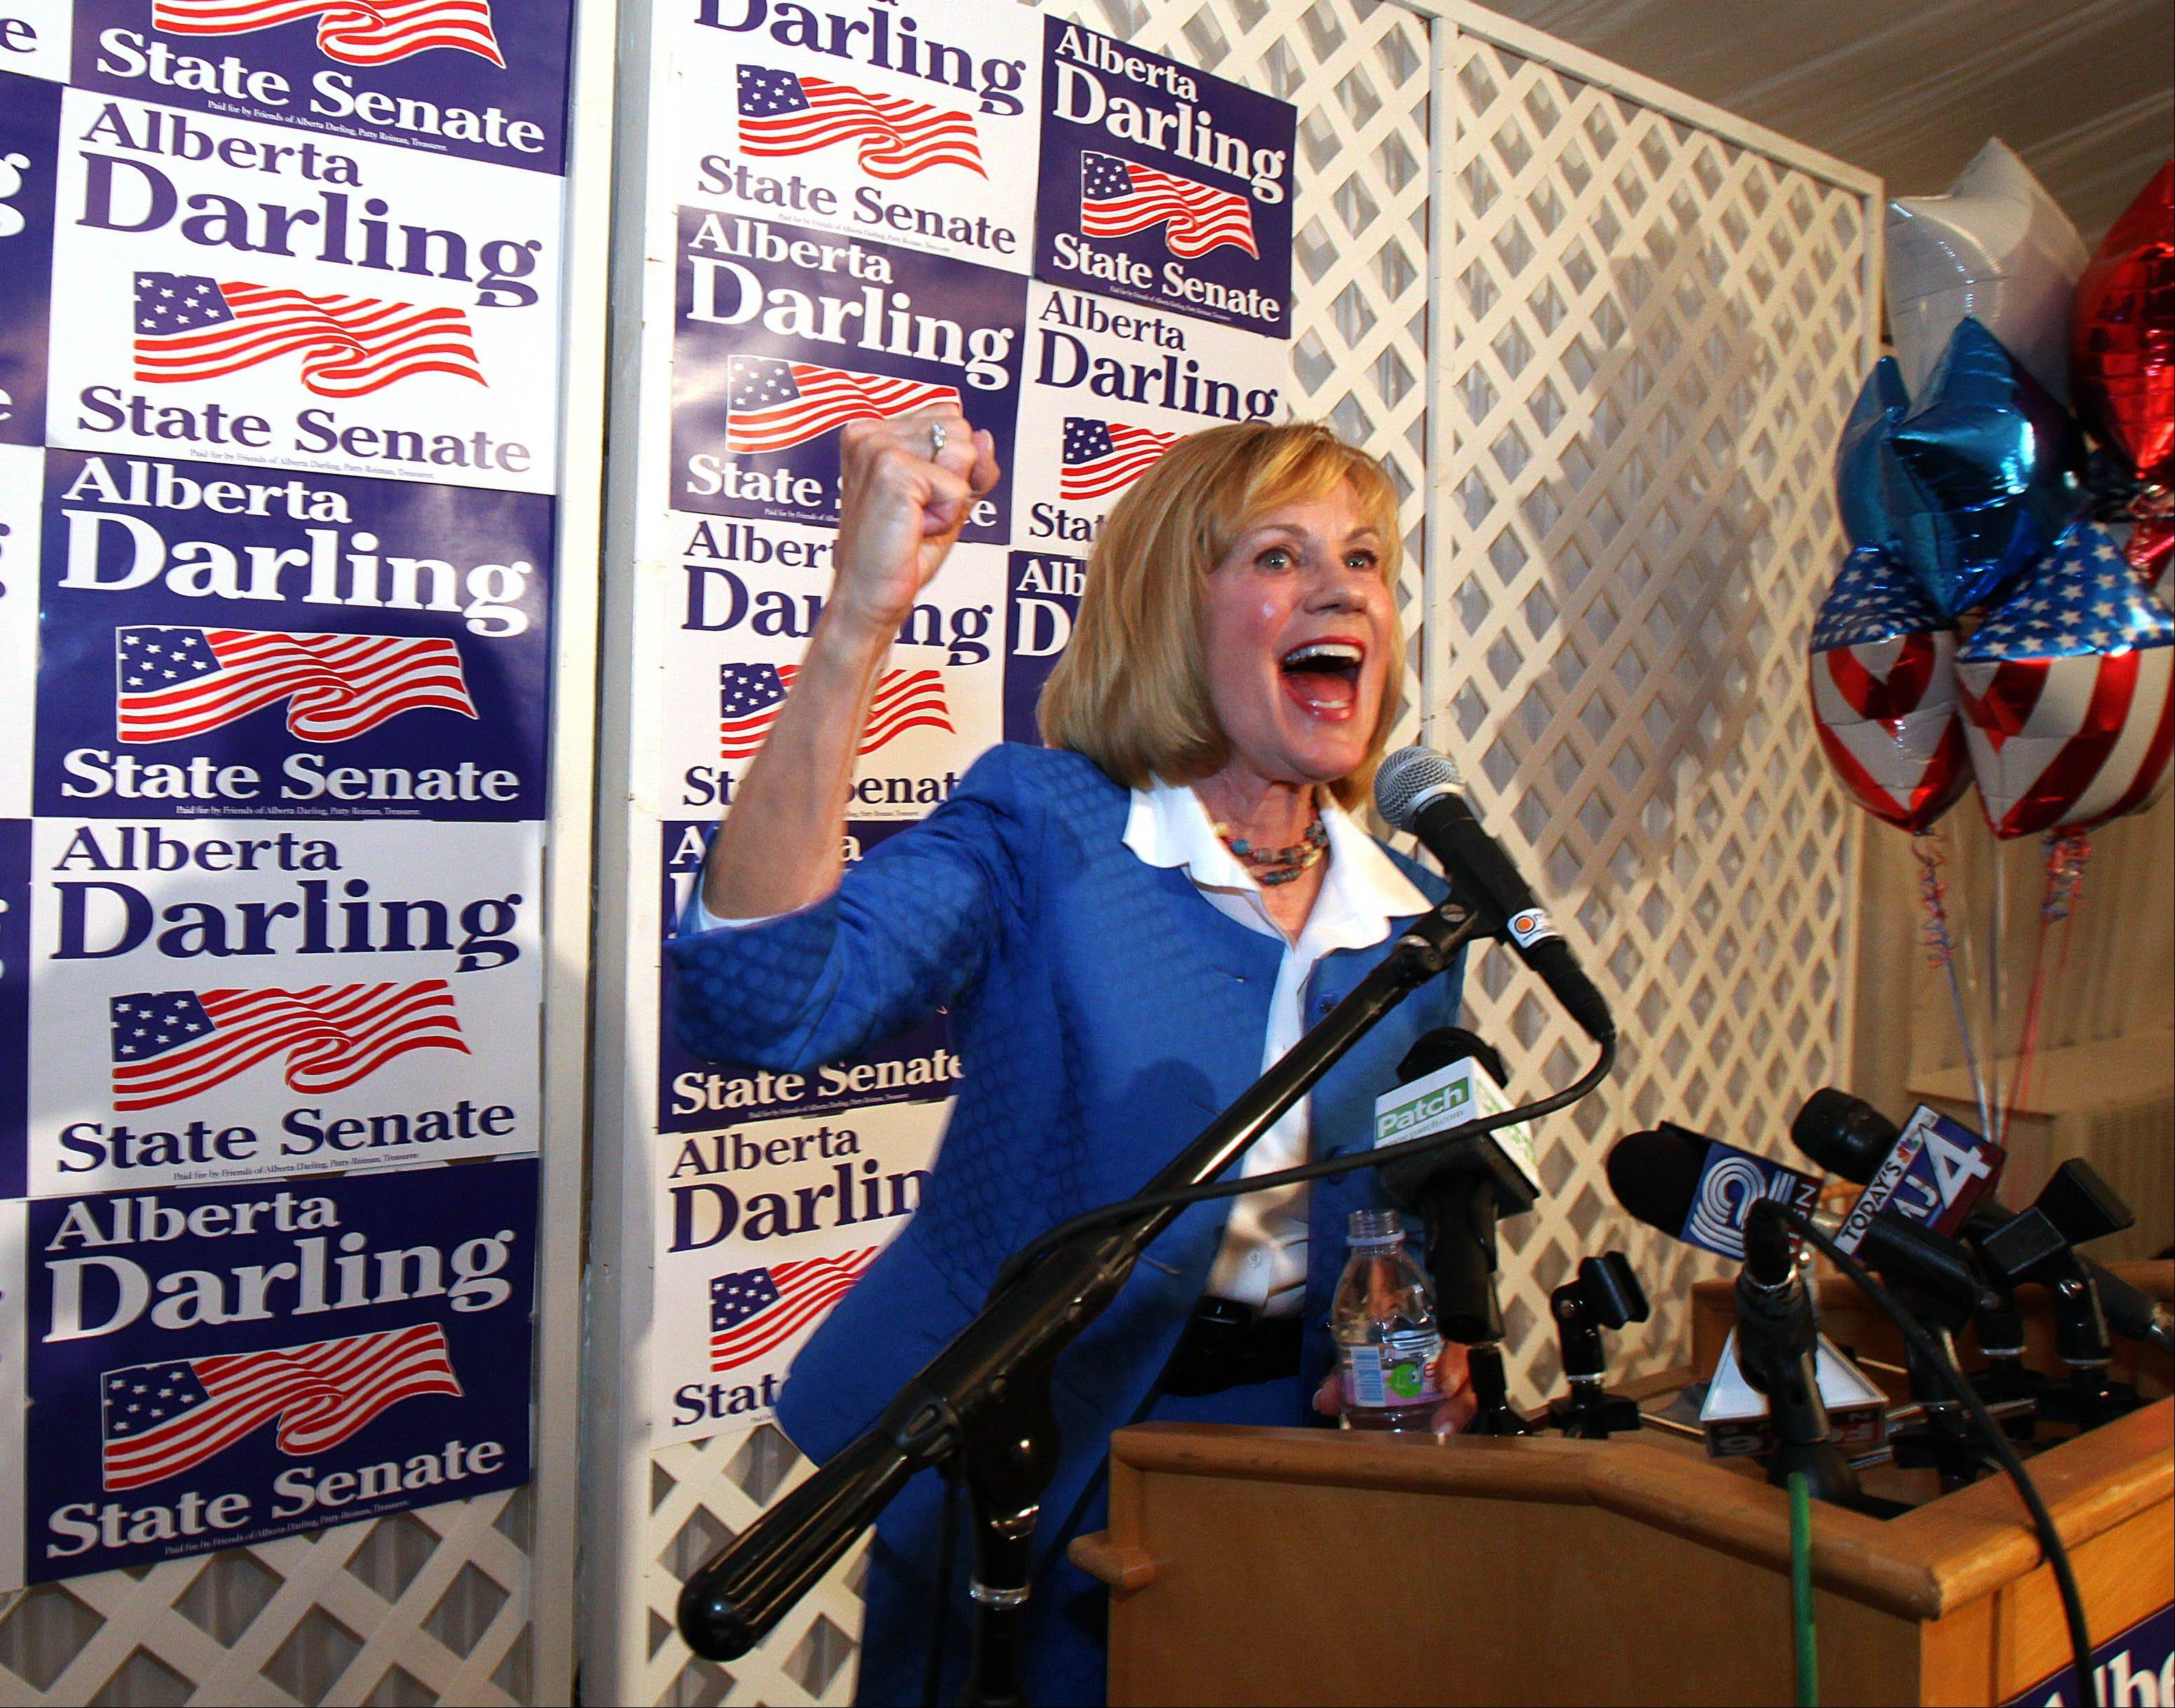 Republican Sen. Alberta Darling speaks to supporters at her recall election results party in Thiensville, Wis., Tuesday night, after she successfully fended off a vote meant to unseat her.